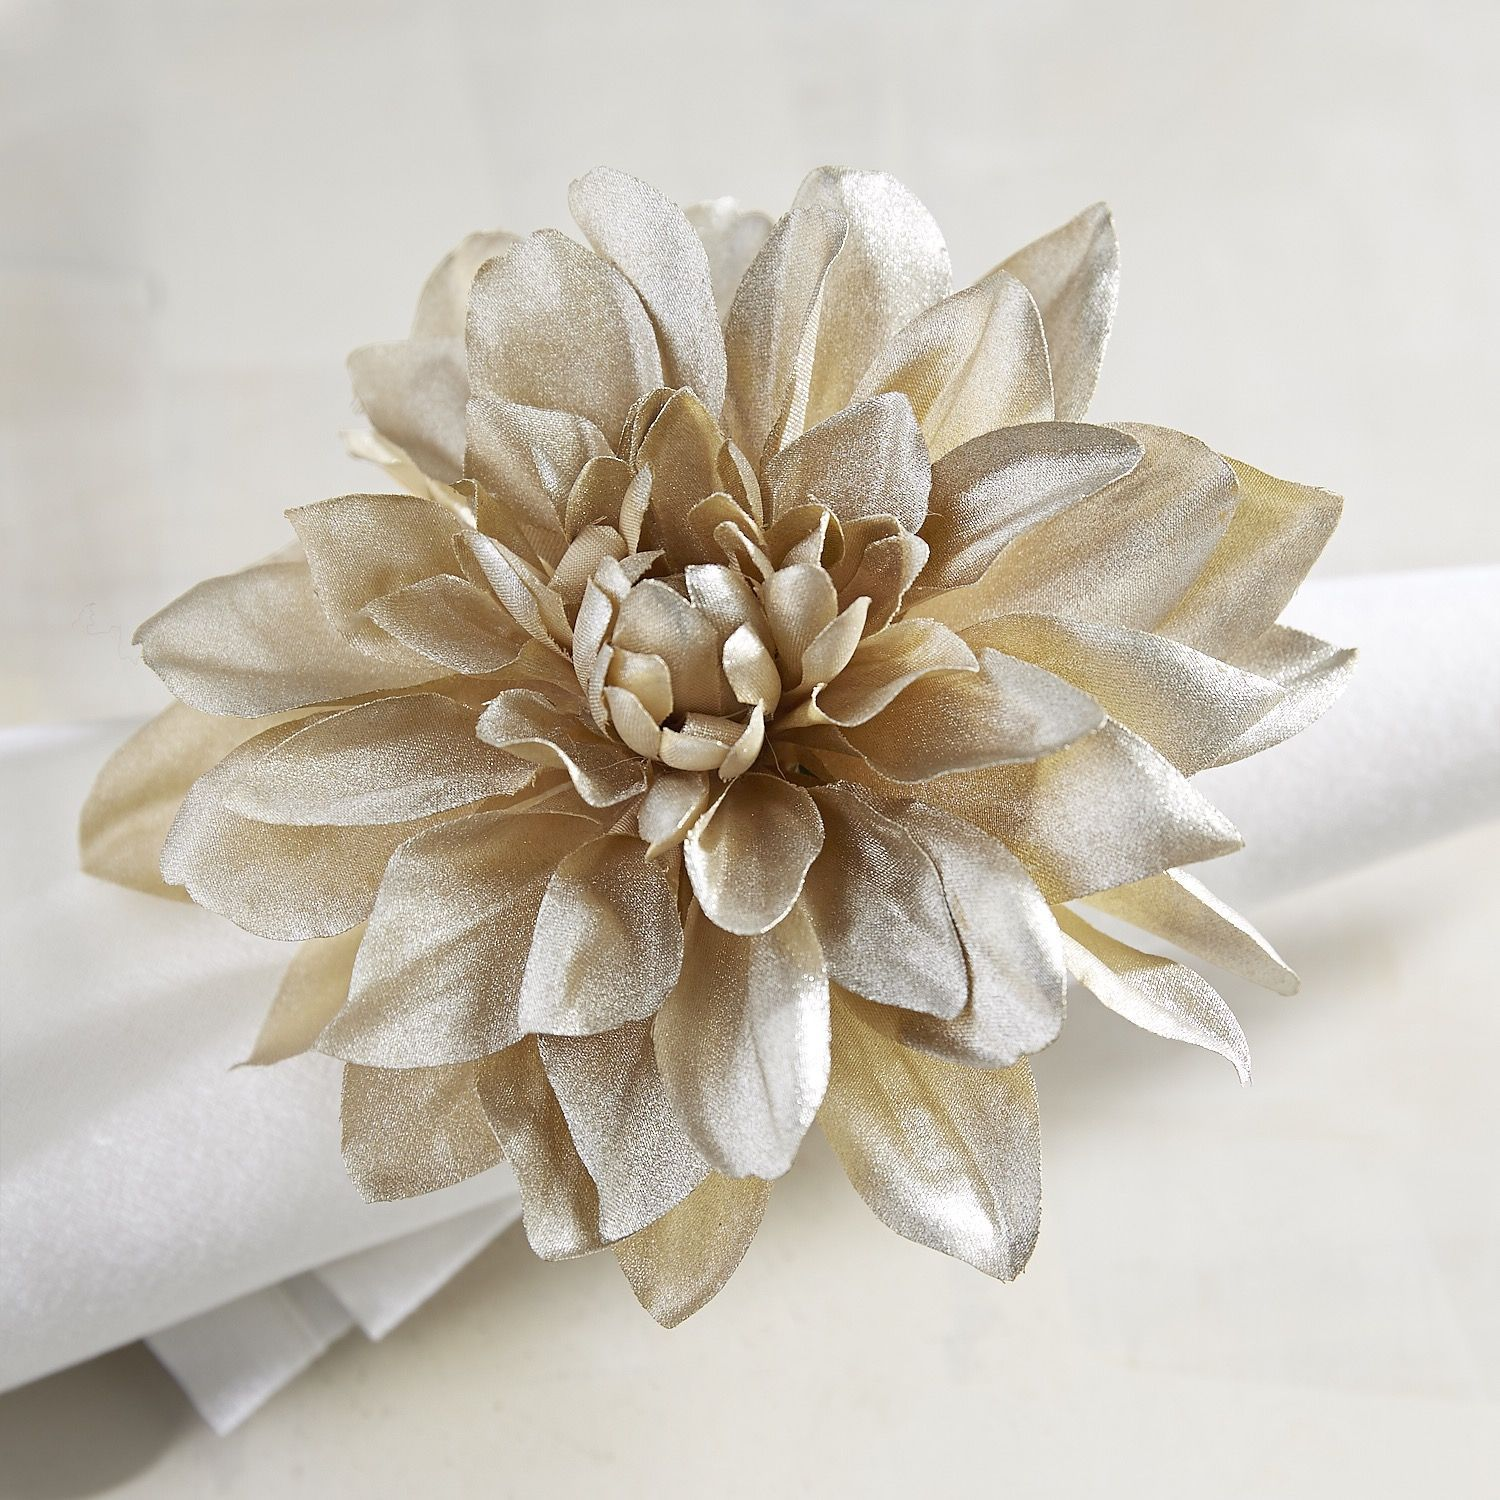 Champagne Dahlia Flower Napkin Ring Dahlia Flower And Products